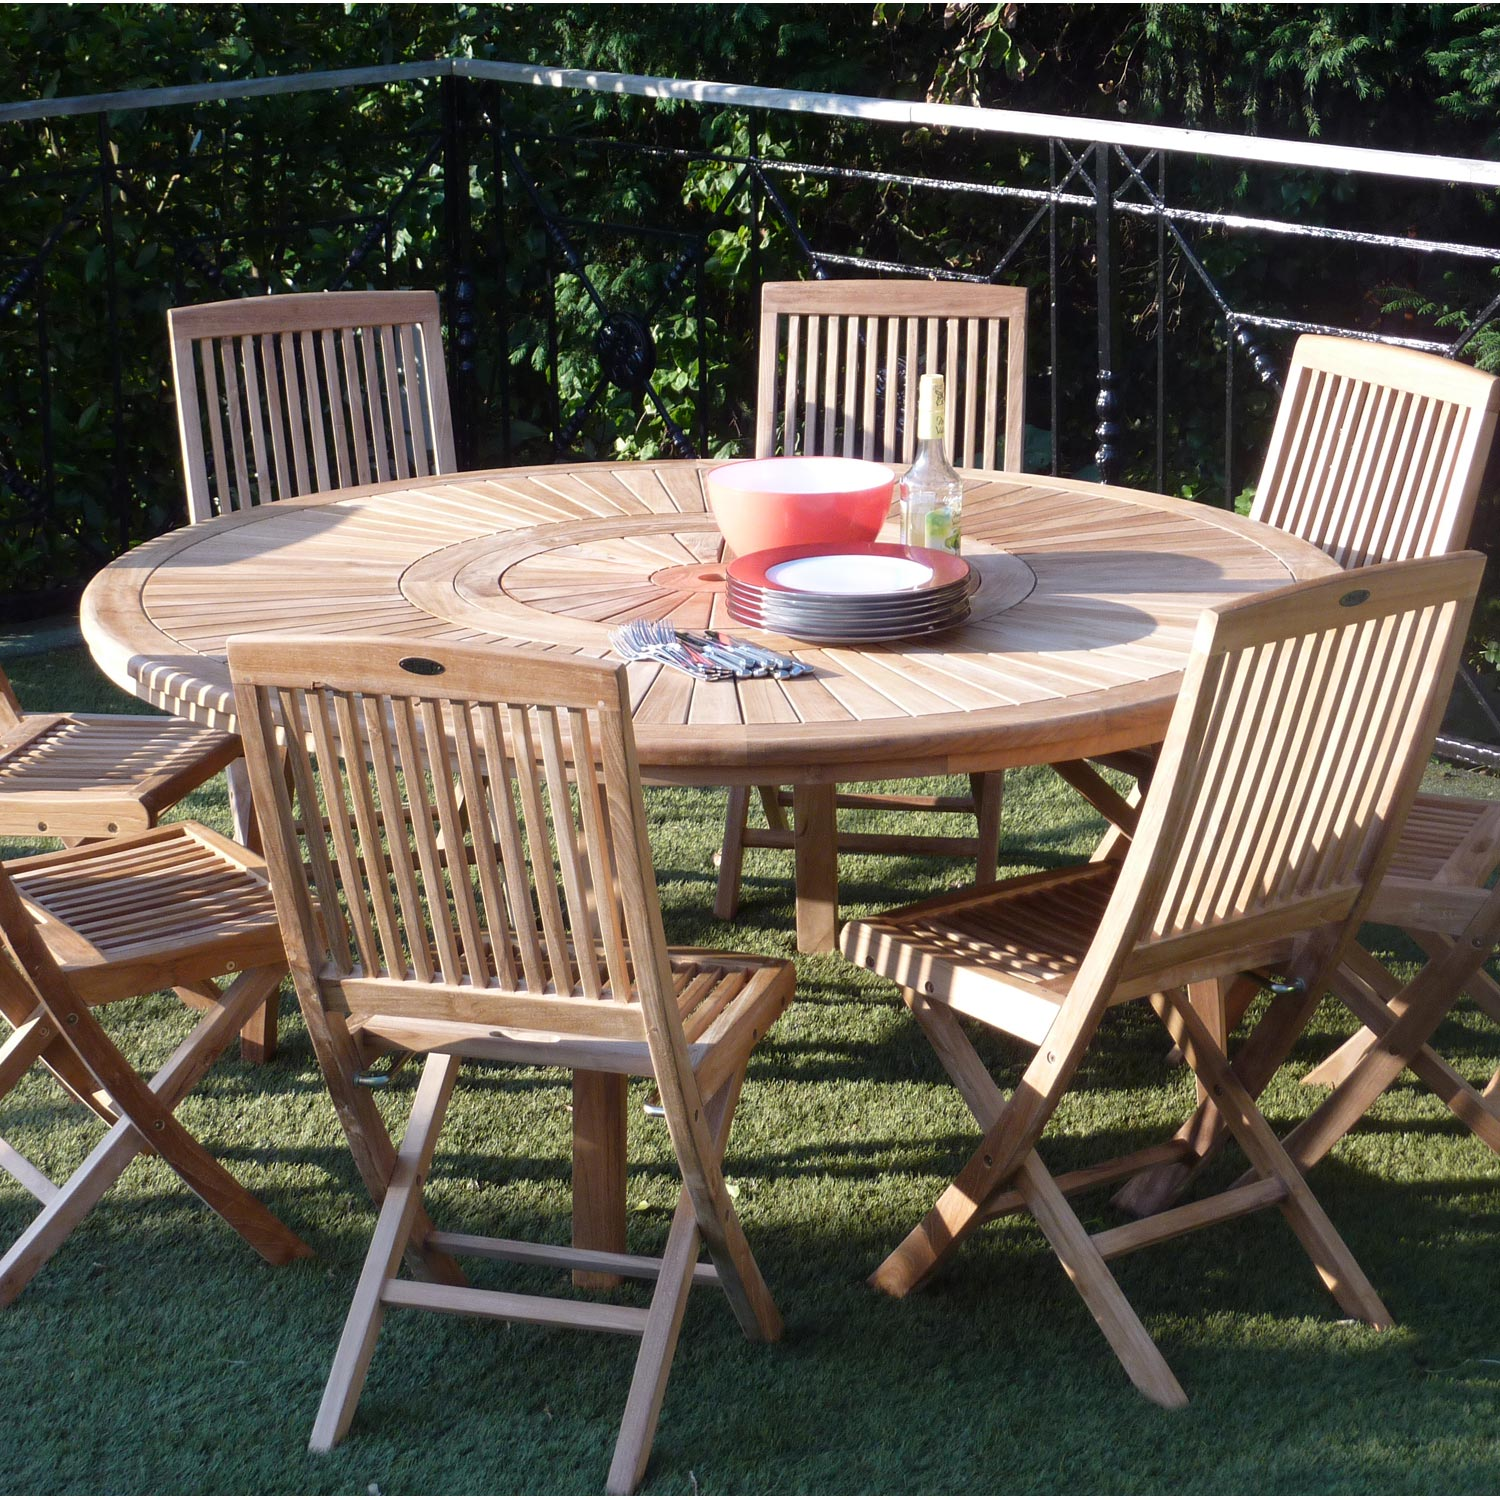 Salon de jardin orion naturel 8 personnes leroy merlin Table ronde jardin bois